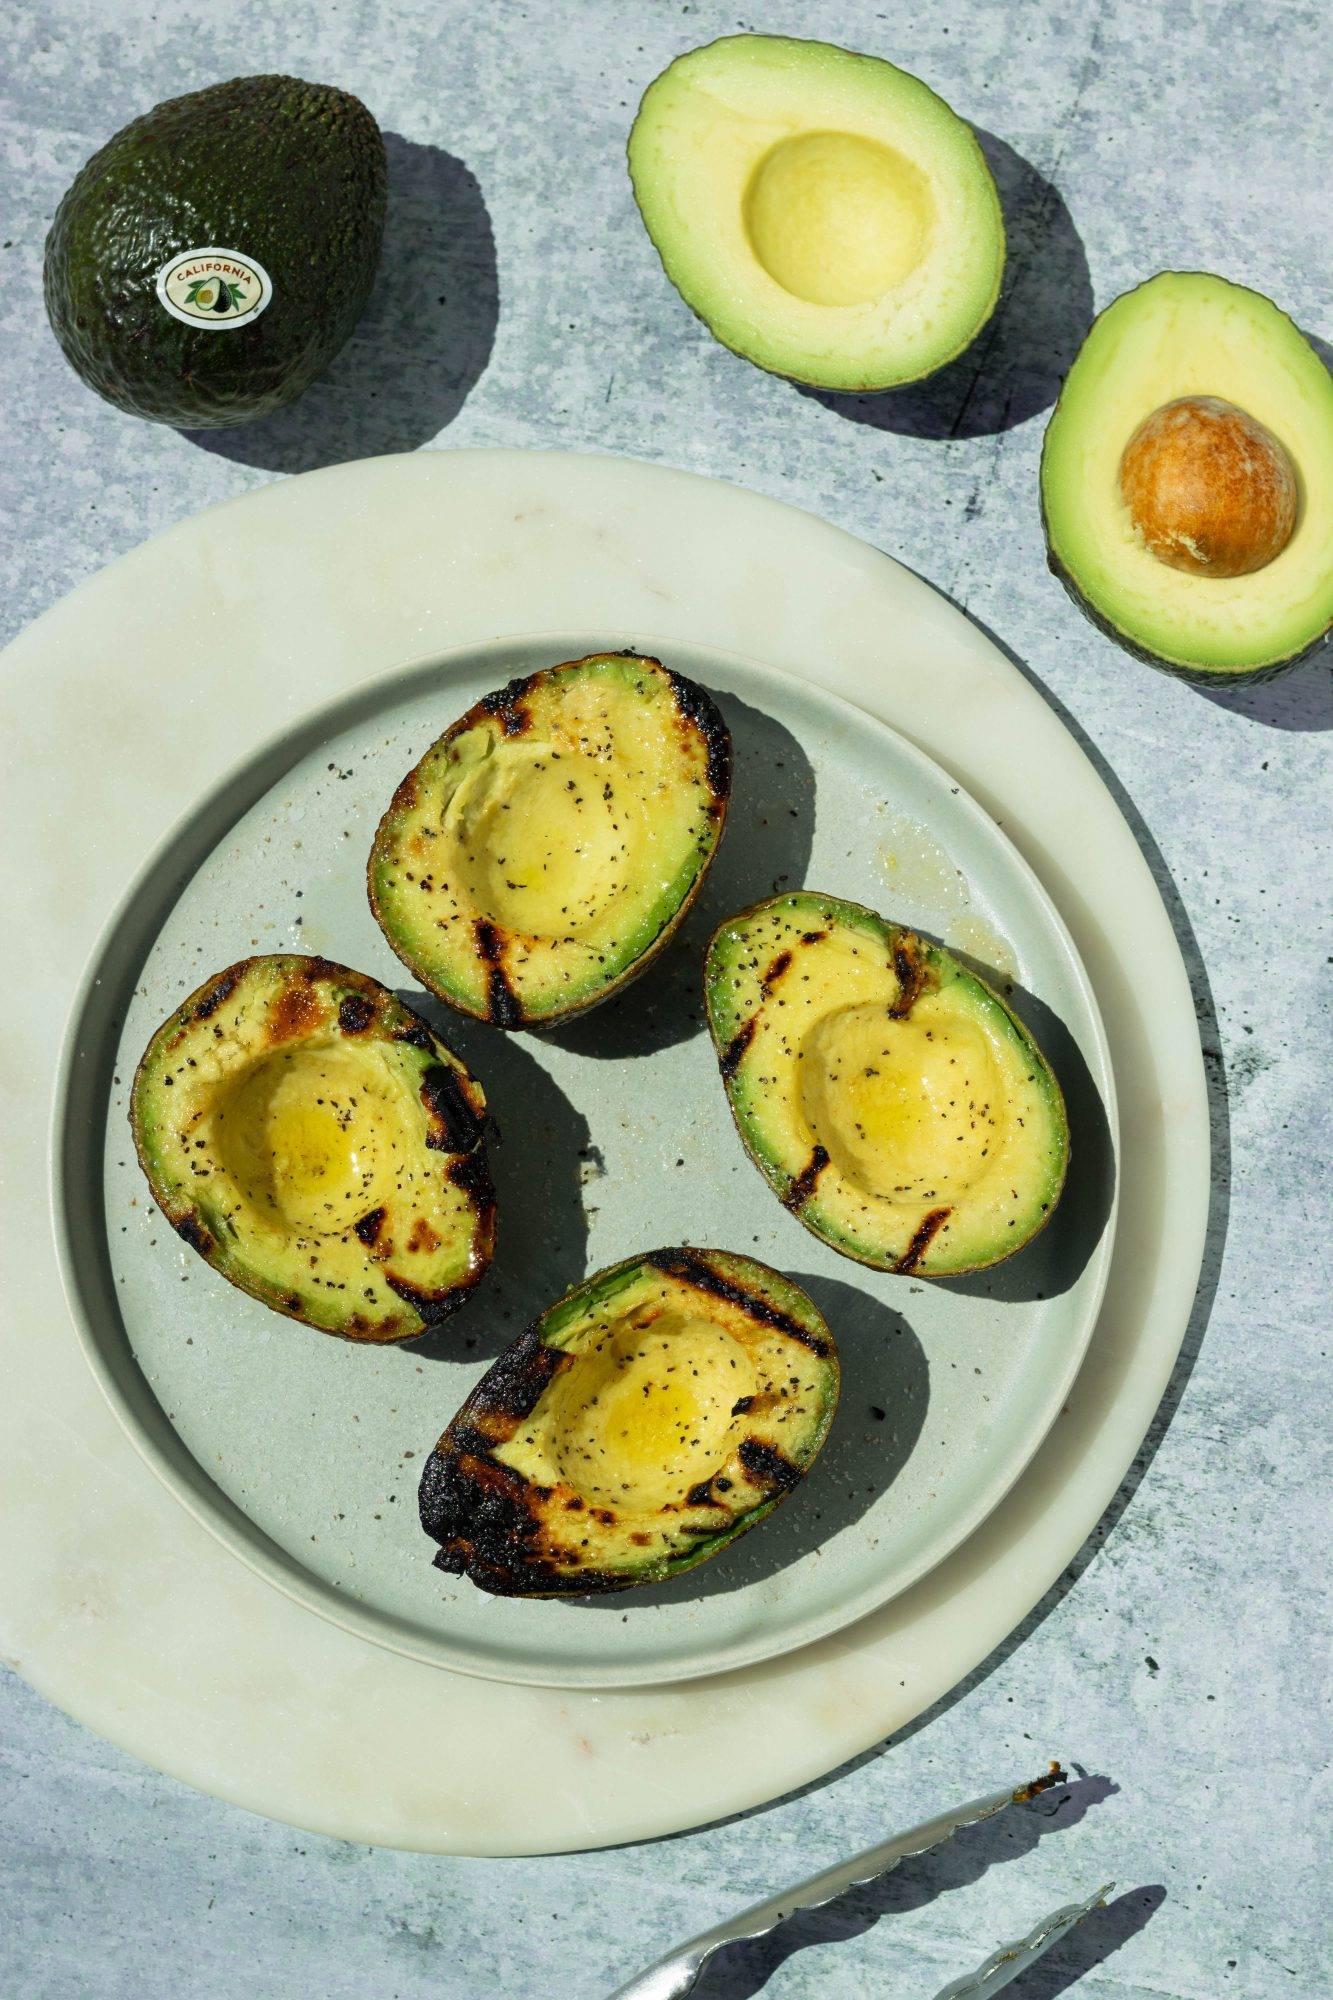 How to Grill Avocado